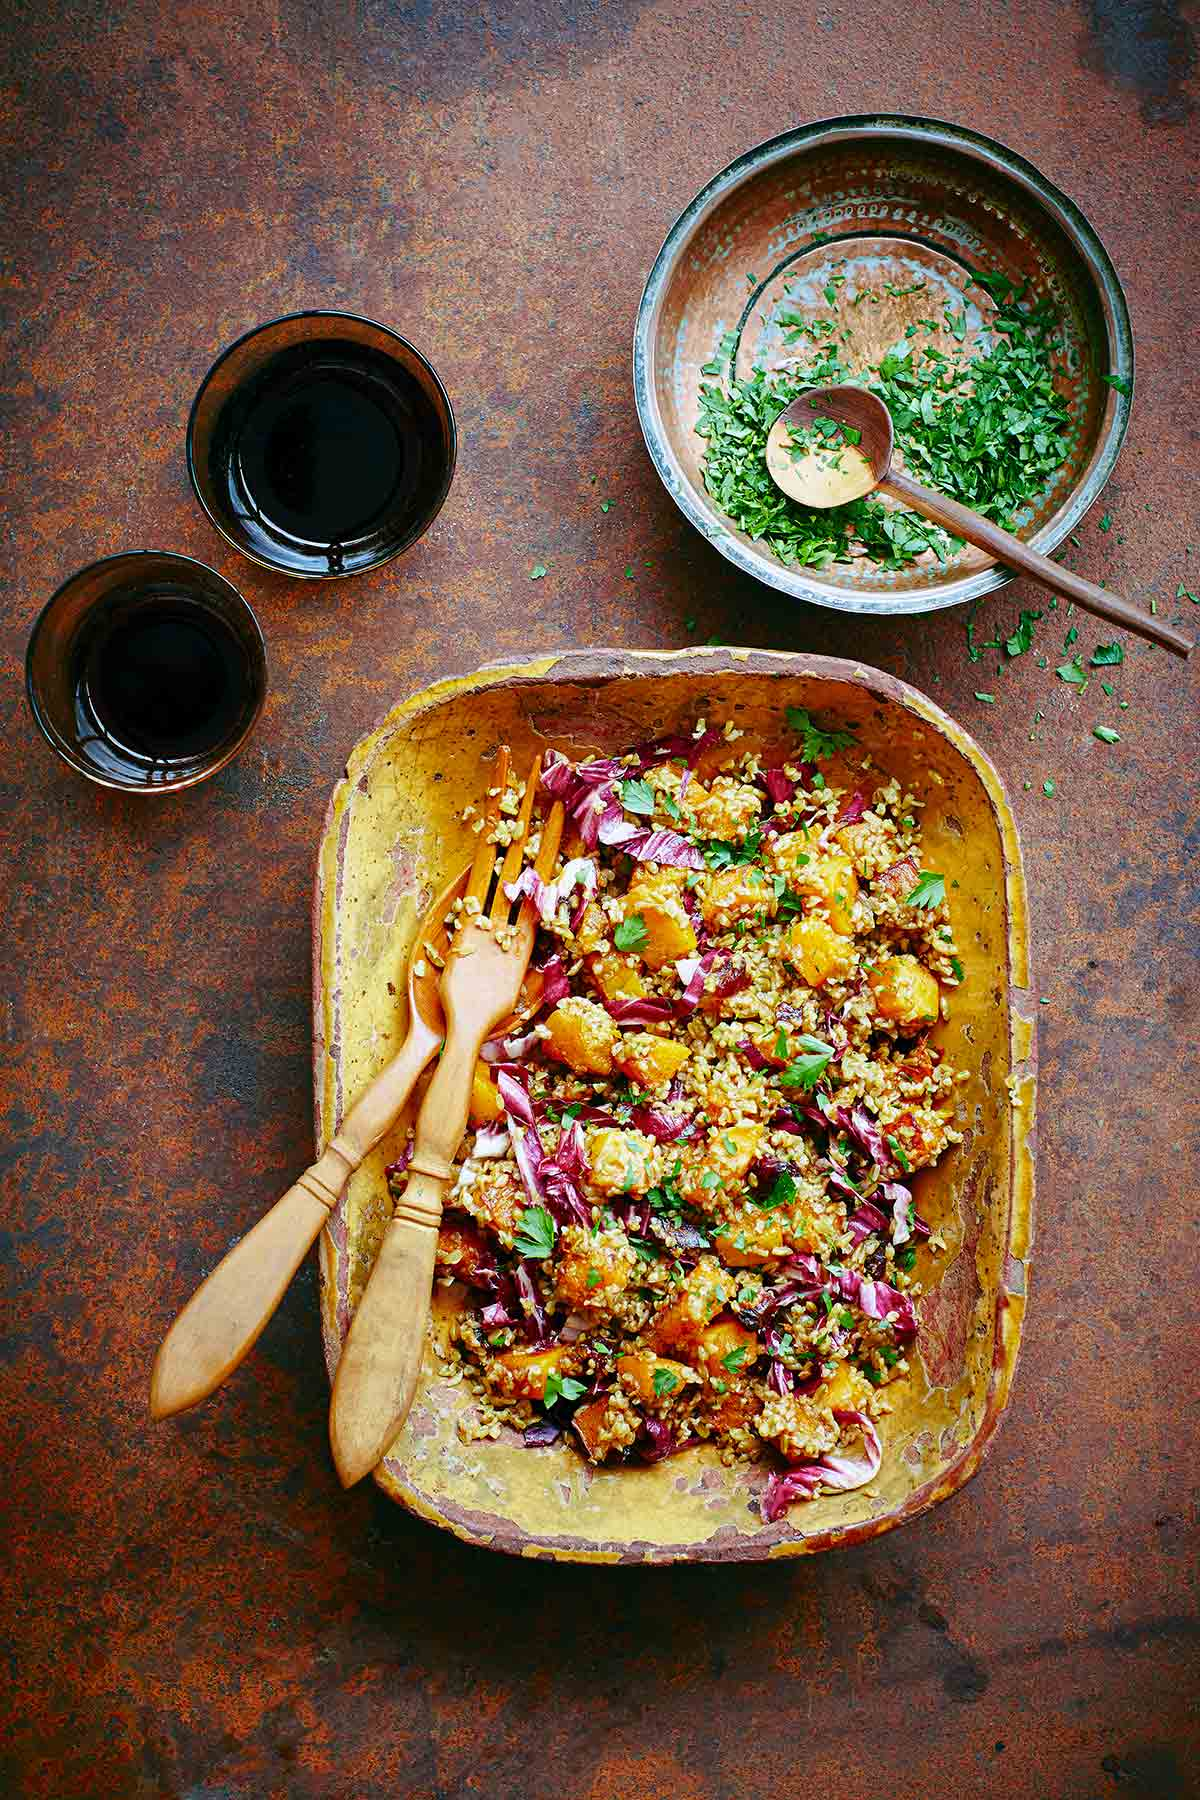 A wooden bowl with butternut squash and whole grain salad with a bowl of chopped parsley on the side and two glasses.